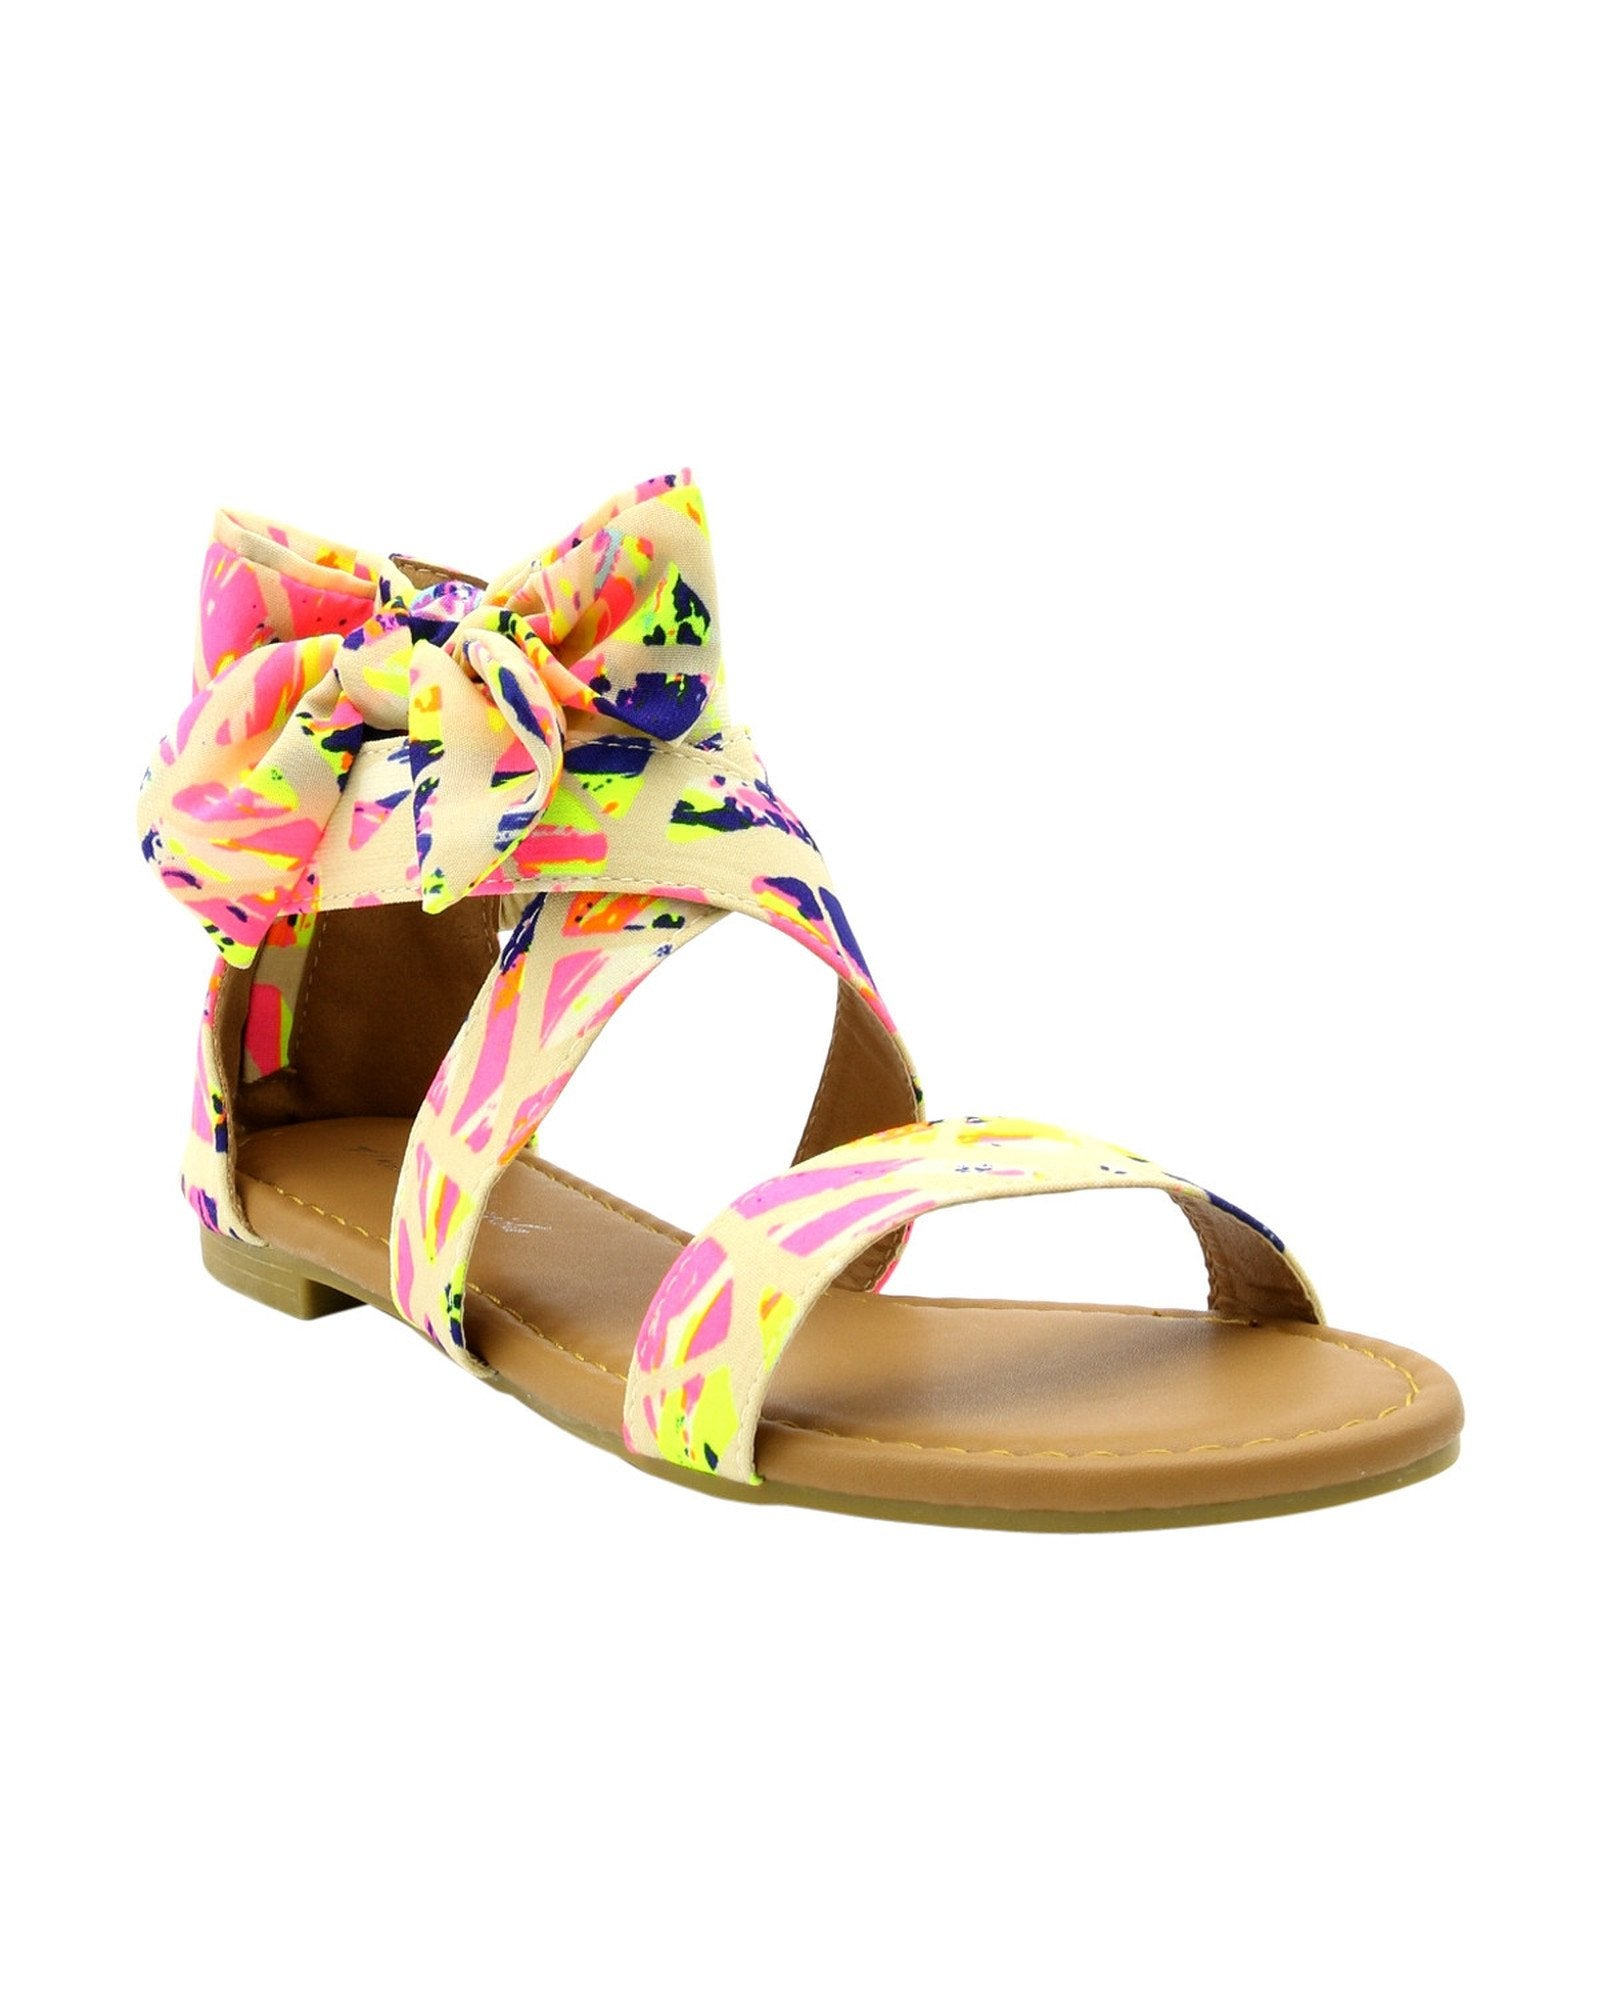 Women's Bow Splatter Paint Print Gladiator Sandals